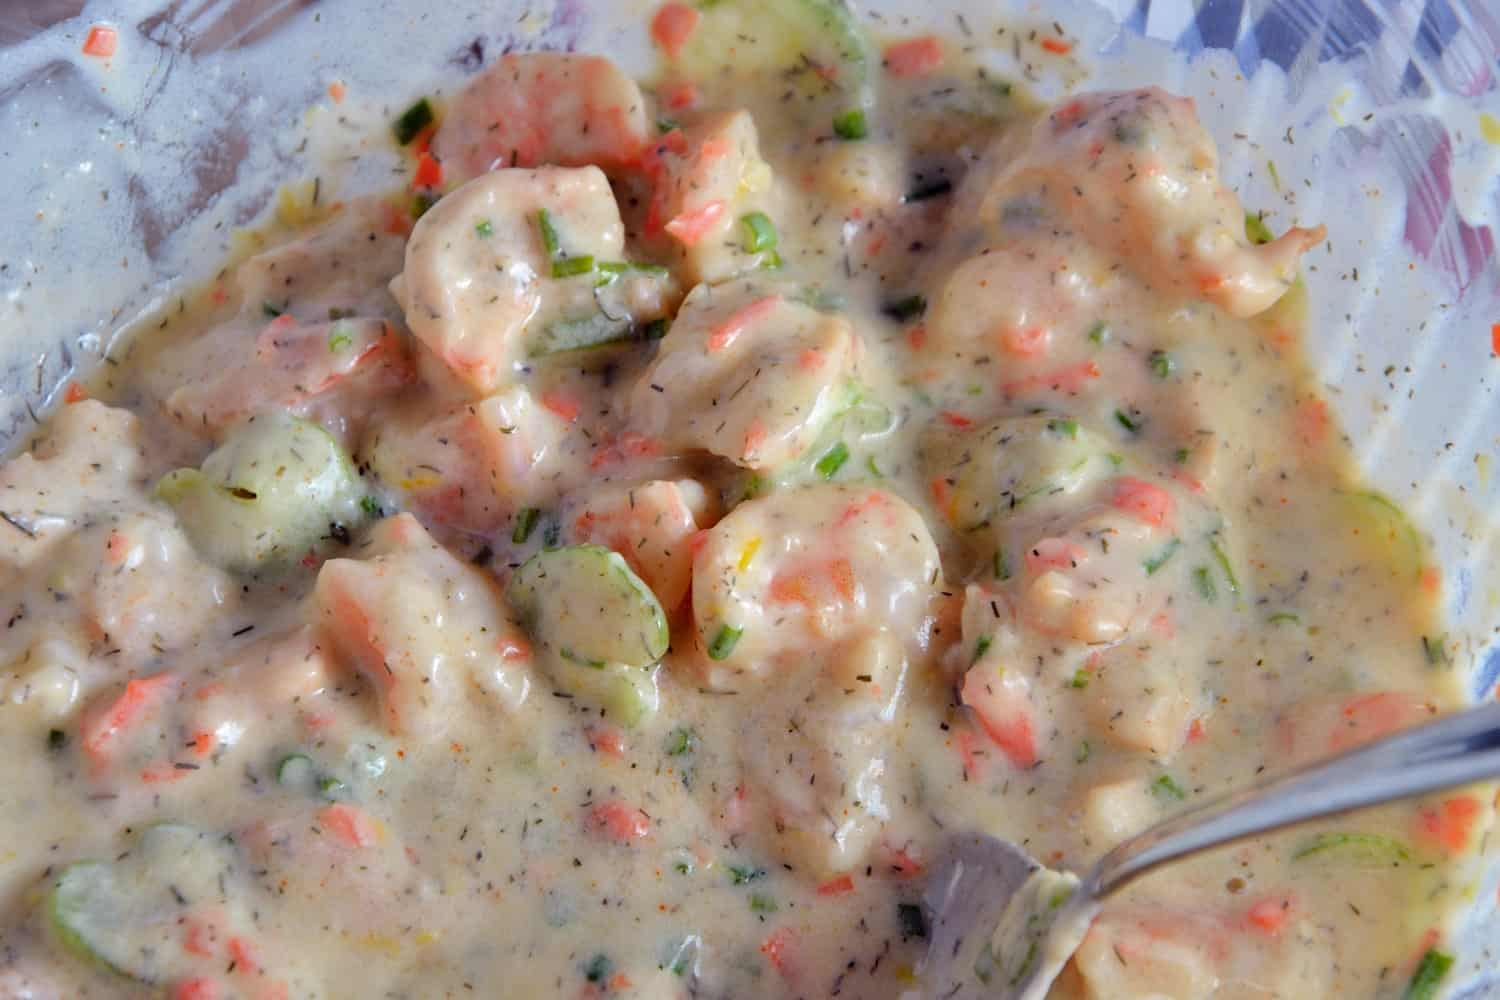 Lemon Garlic Shrimp Salad is a healthier version of classic comfort food using plain yogurt, celery, carrots, chives, dill and spices on a buttery brioche roll. www.savoryexperiments.com